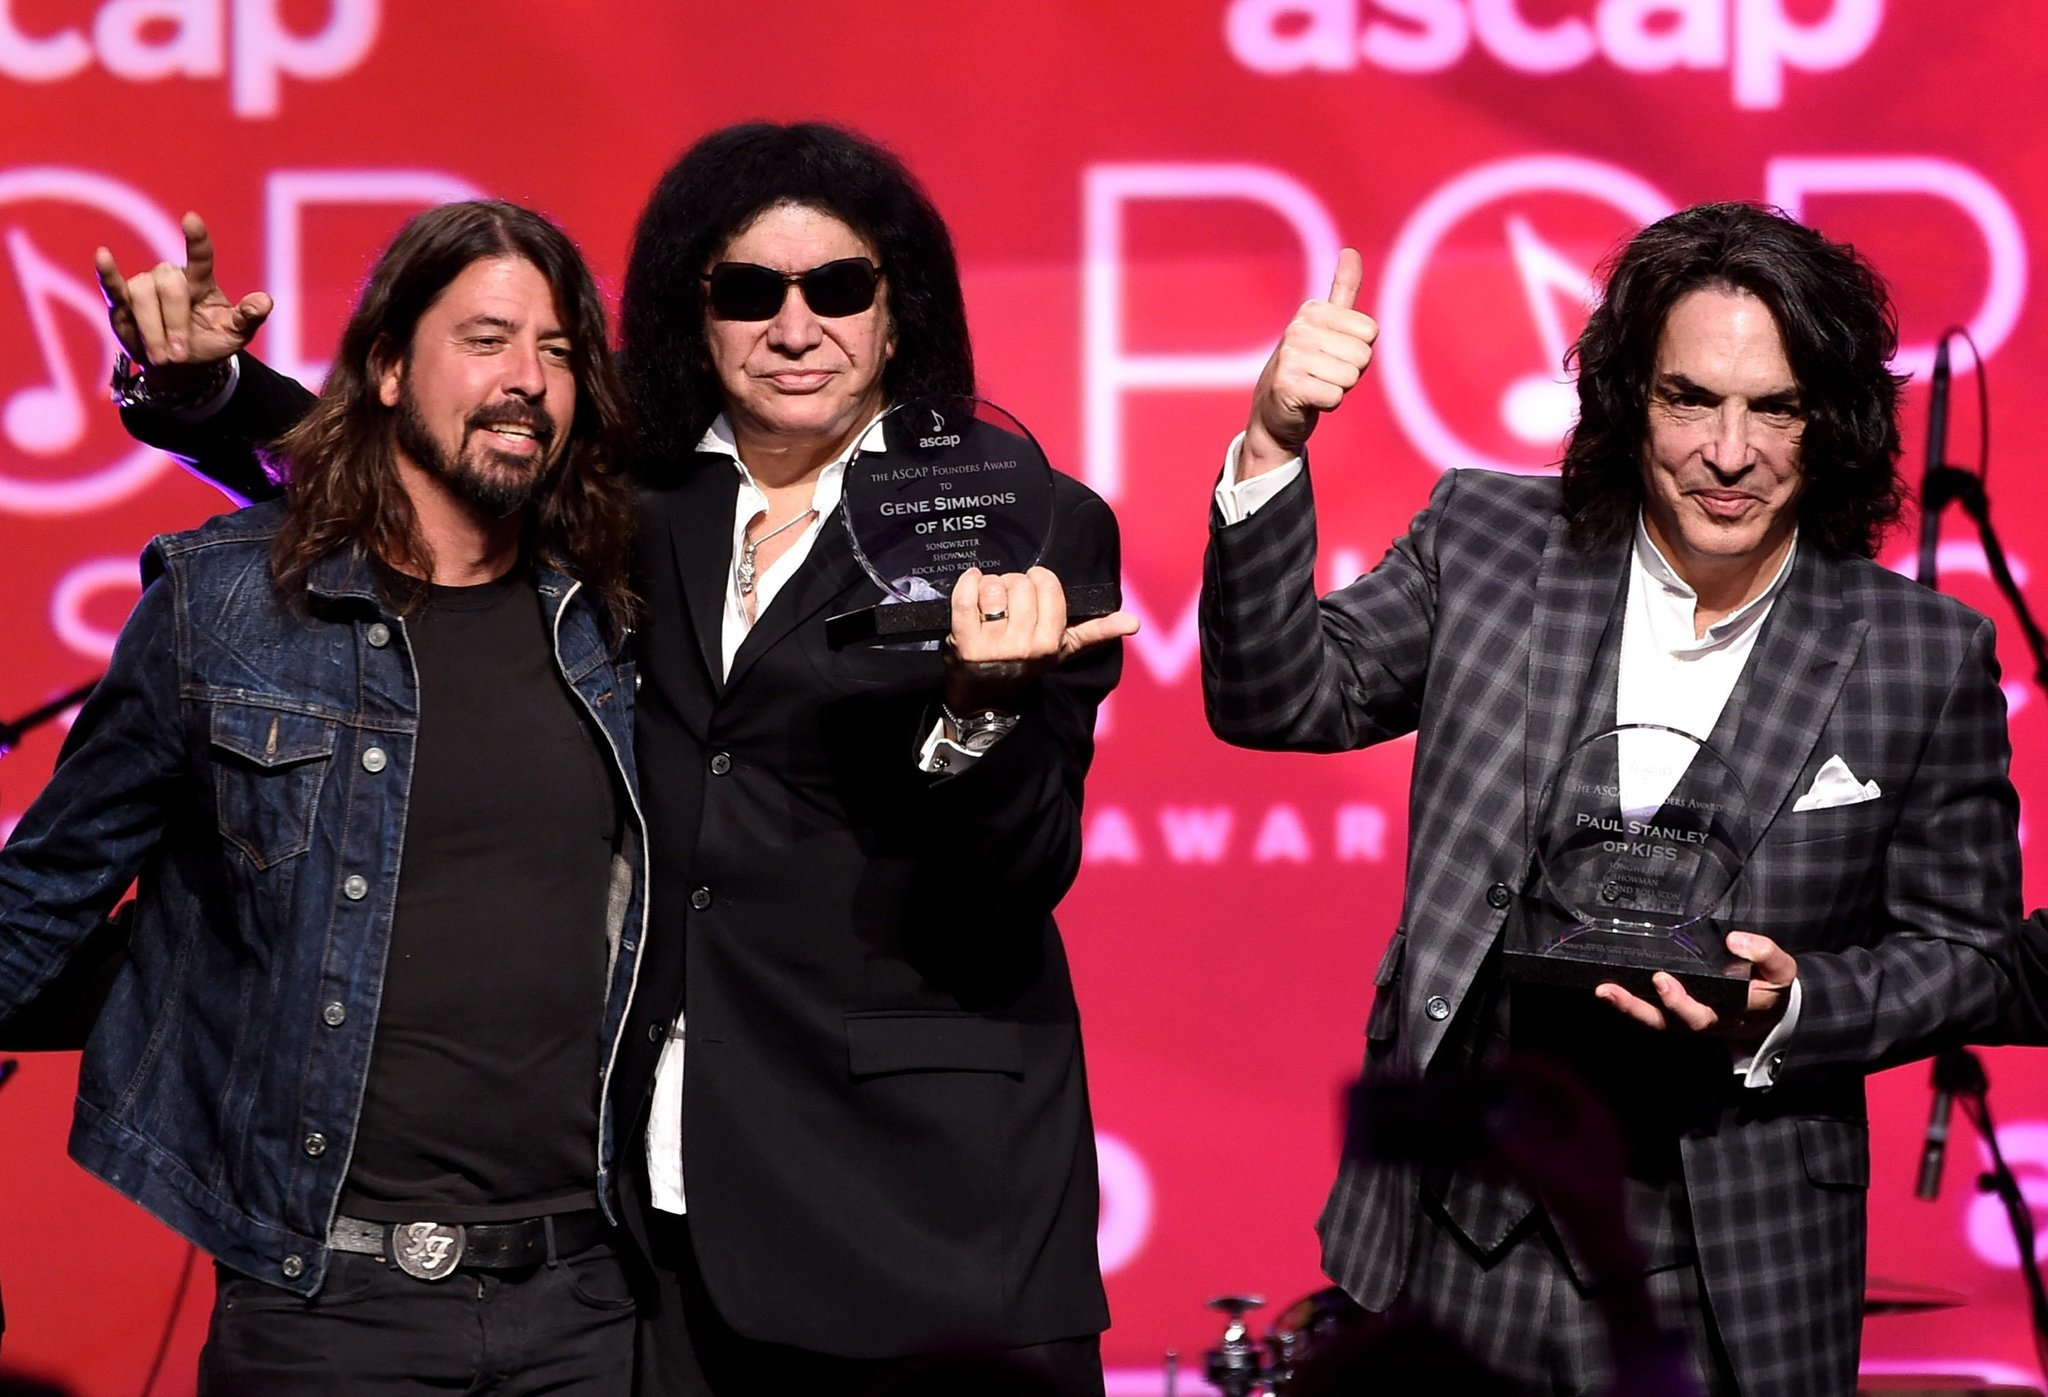 gene simmons and paul stanley of kiss among ascap honorees. Black Bedroom Furniture Sets. Home Design Ideas